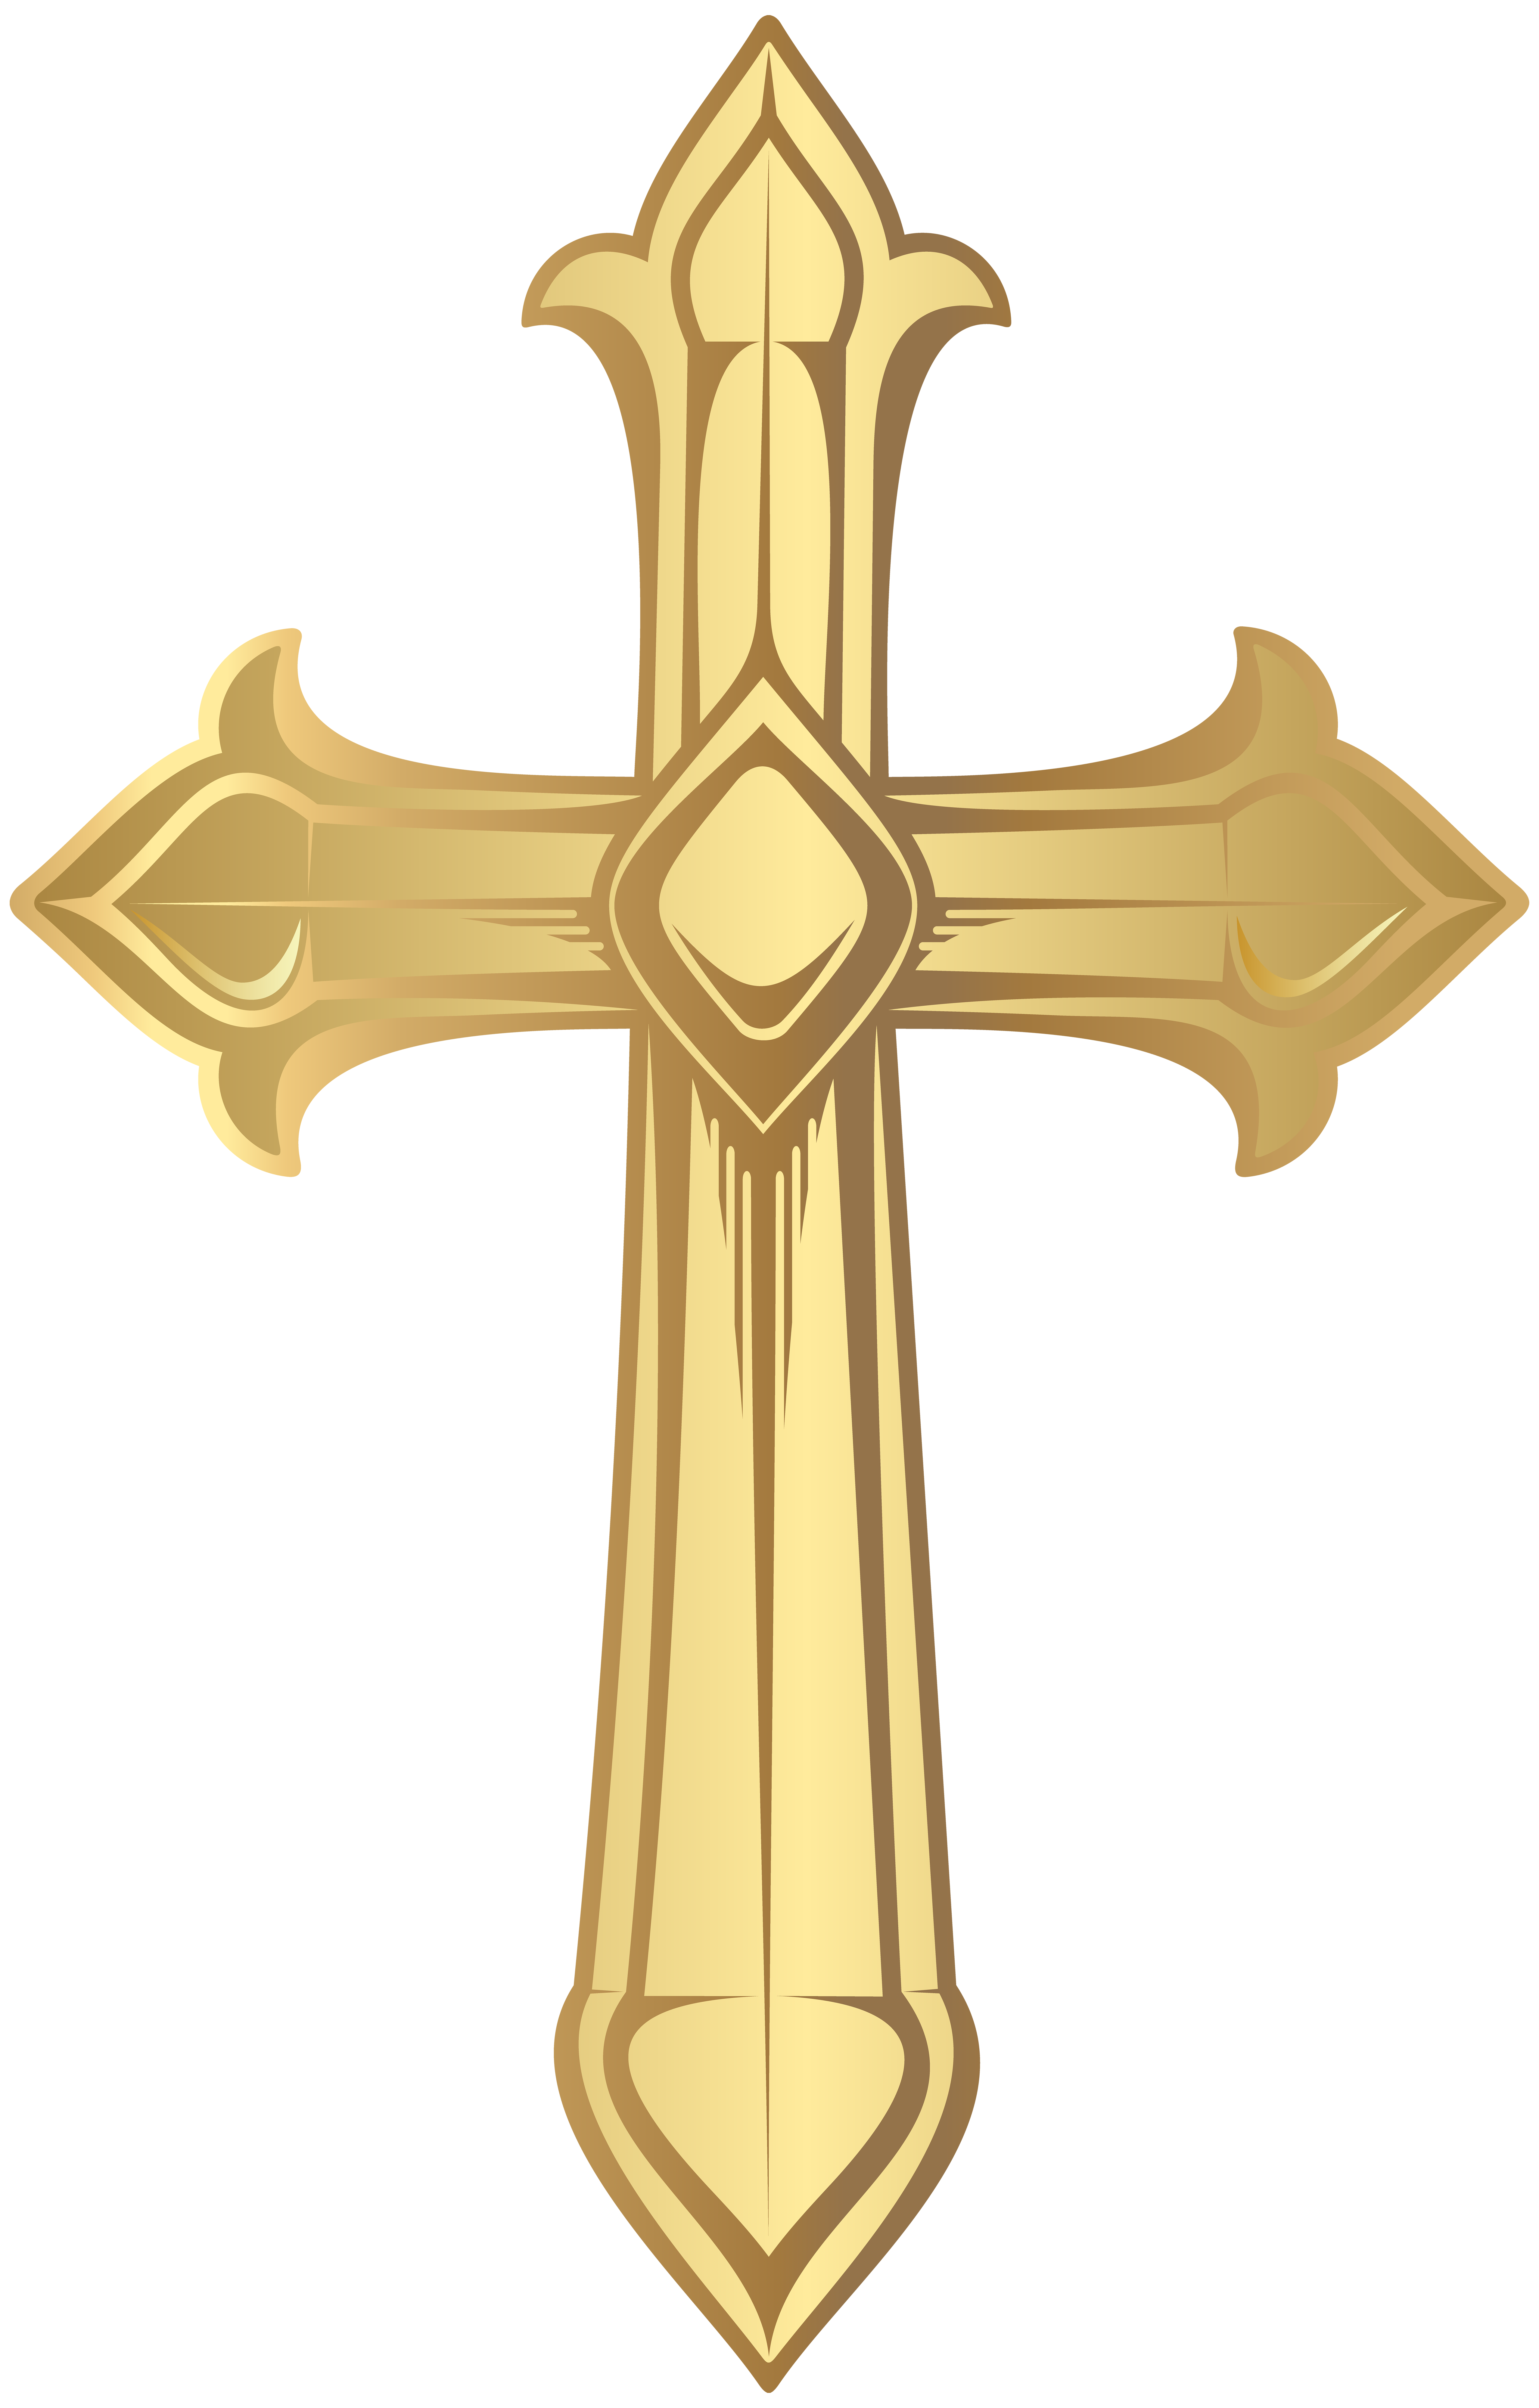 Symbols category Cross Image. It is of type png. It is